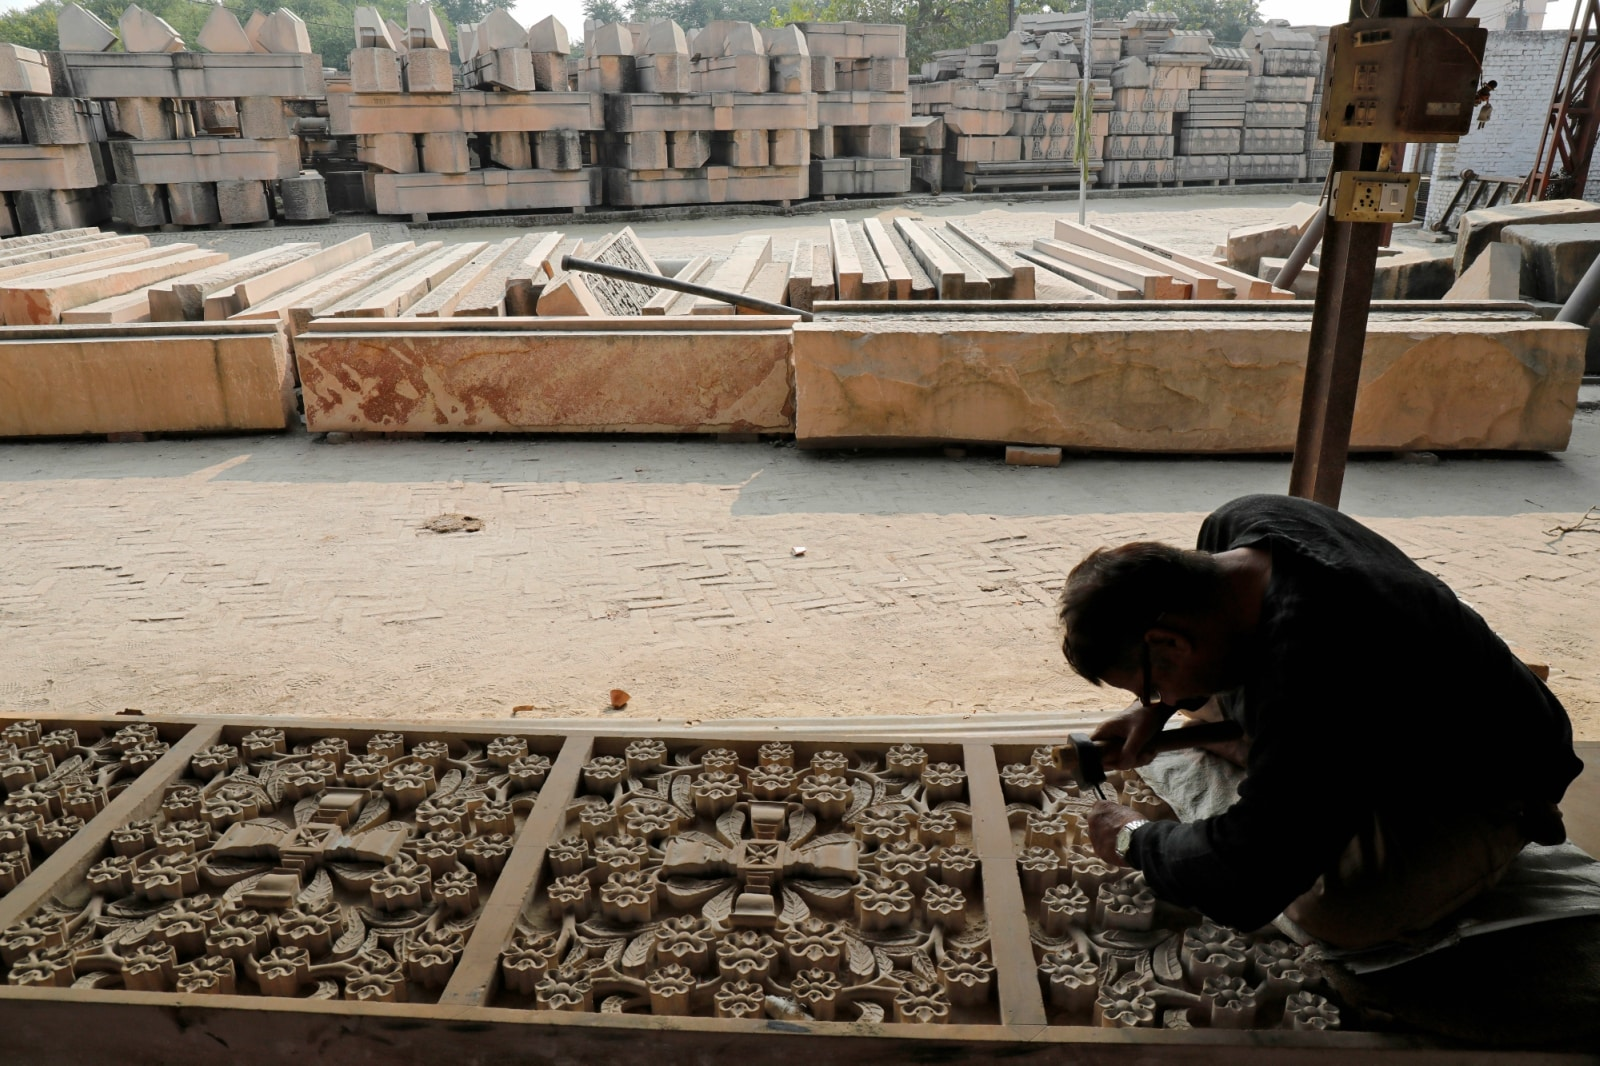 A worker engraves a stone that Hindu groups say will be used to build a Ram temple at a disputed religious site in Ayodhya, Uttar Pradesh, India. November 6, 2018. REUTERS/Pawan Kumar